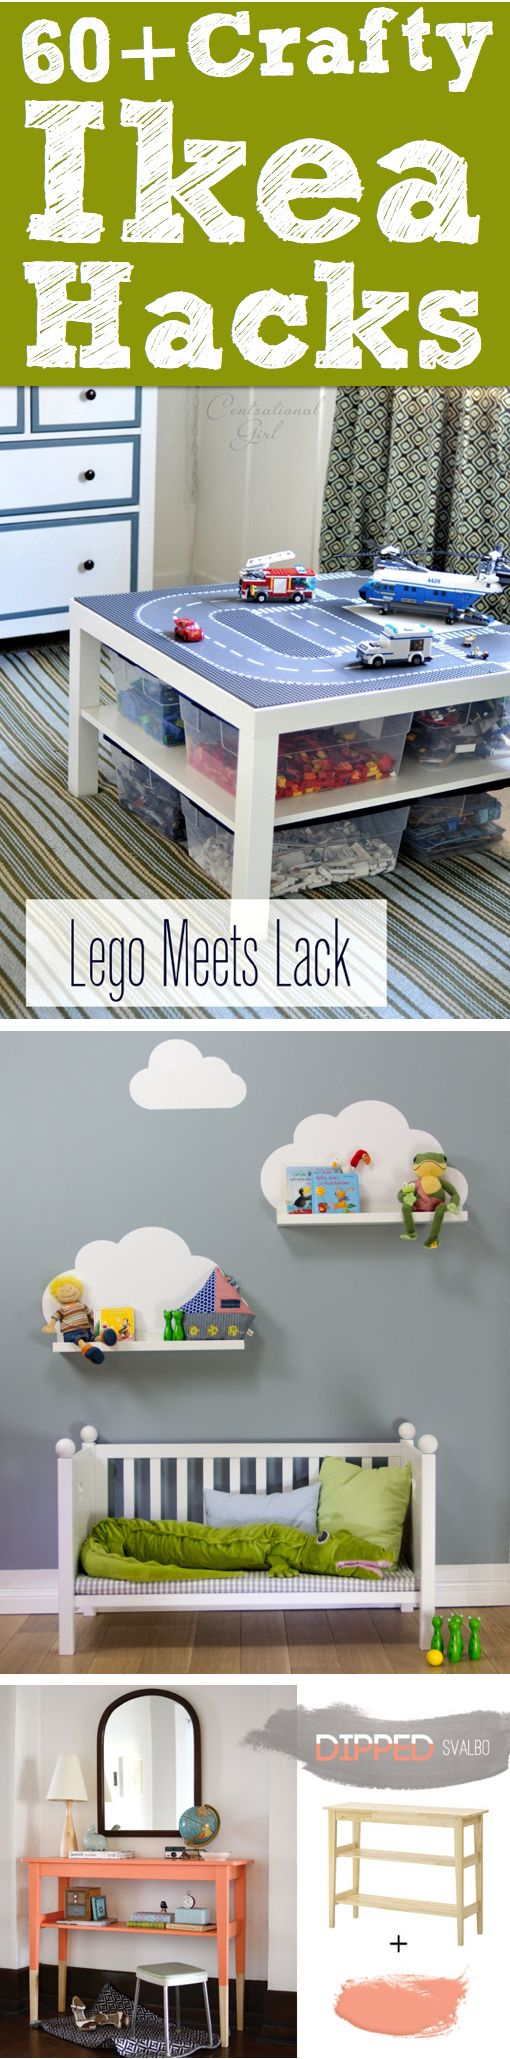 Regal mit gemalter Wolke 60+ Crafty Ikea Hacks To Help You Save Time And Money!